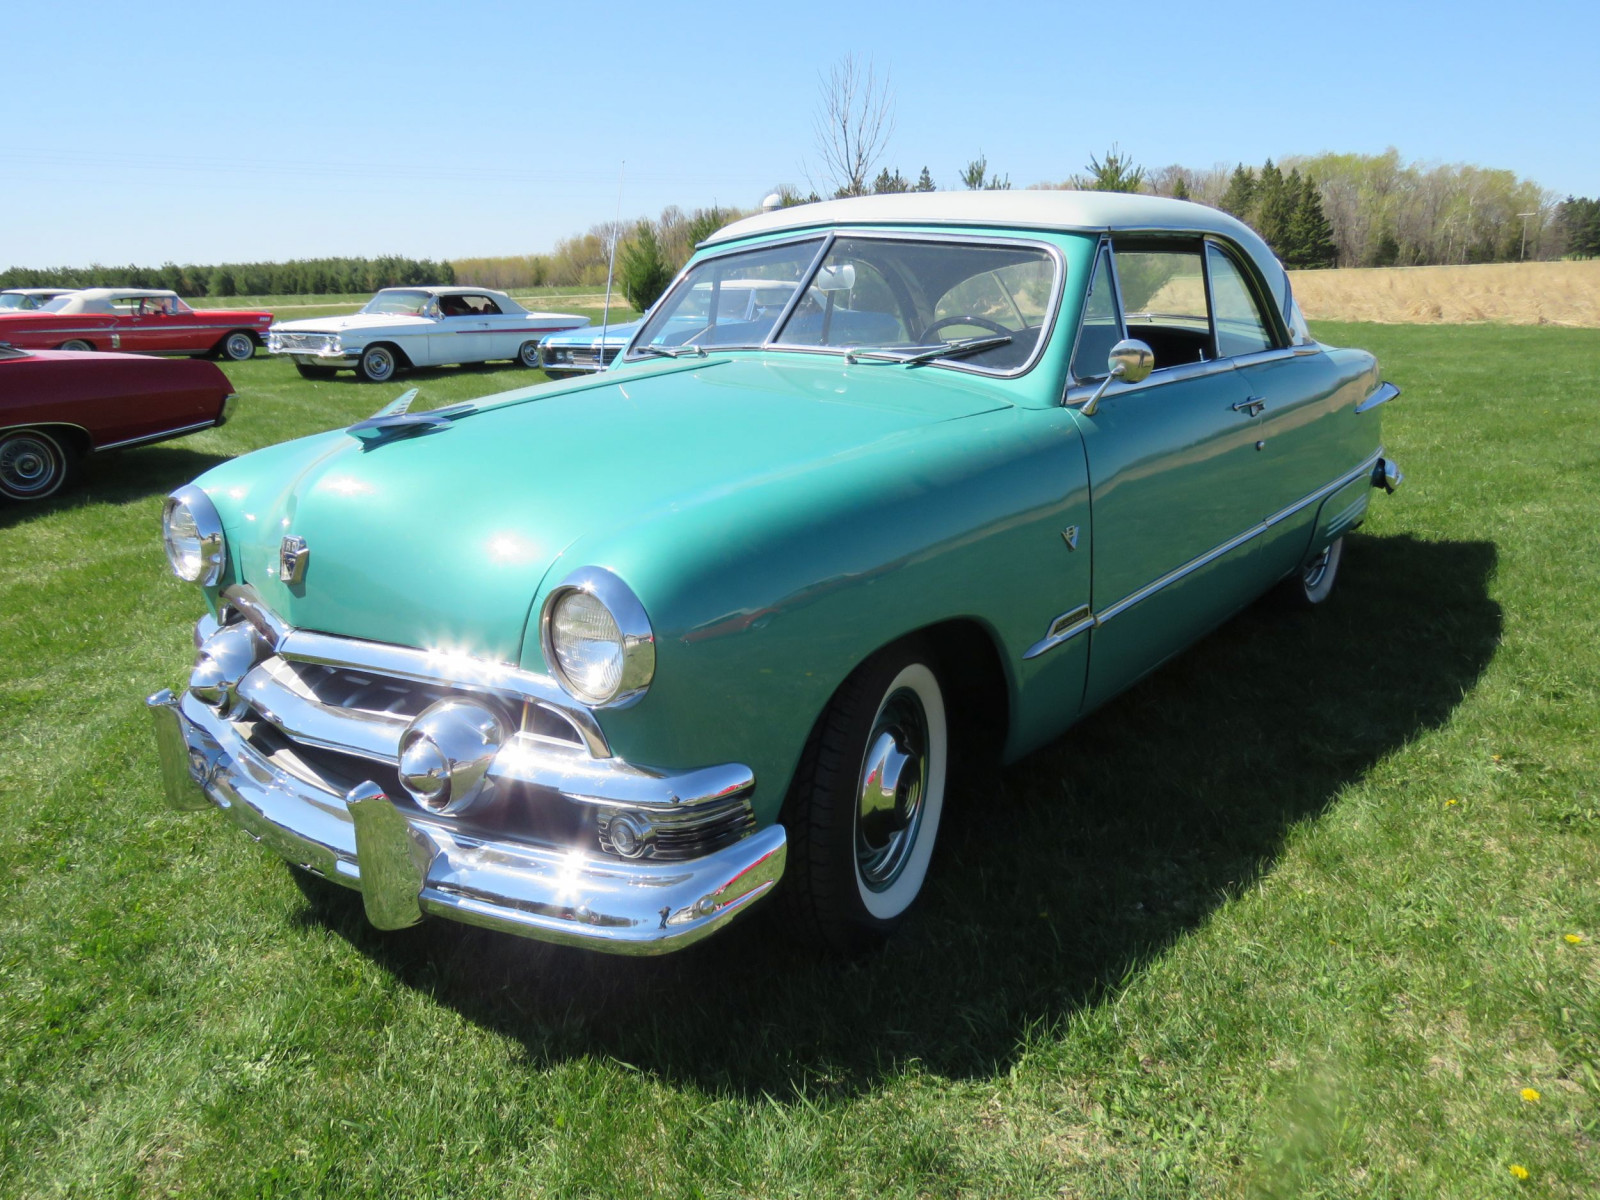 1951 Ford Victoria 2dr HT - Image 3